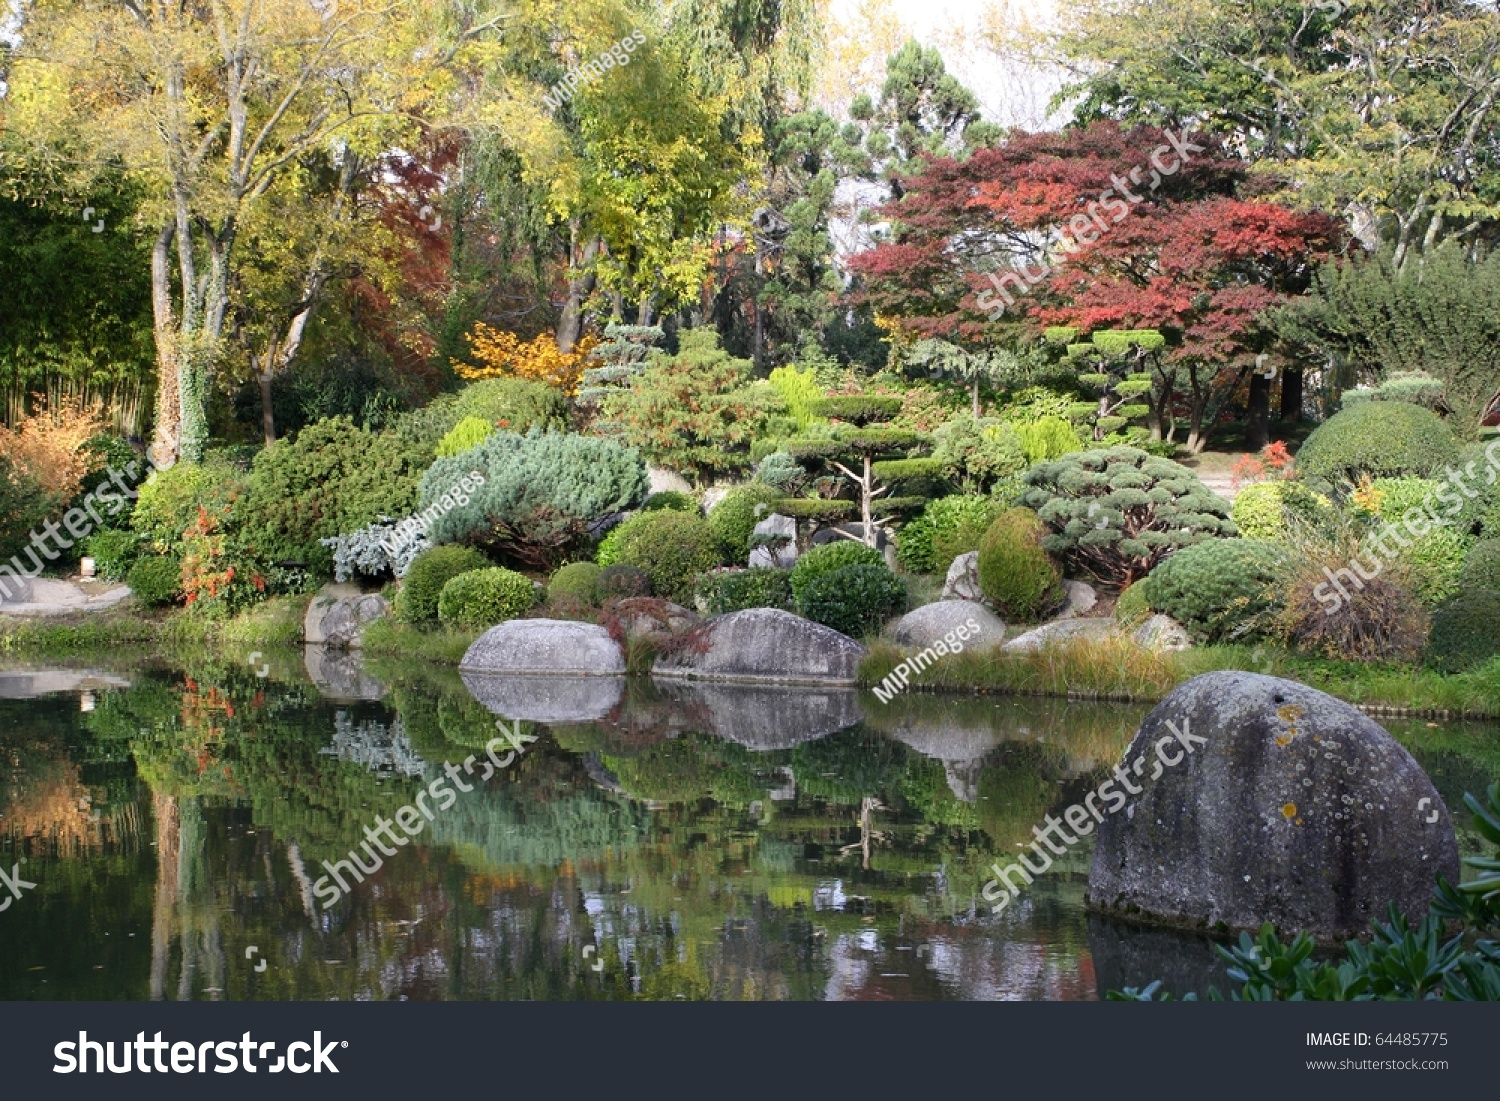 Jardin japonais de toulouse stock photo 64485775 for Jardin japonais toulouse